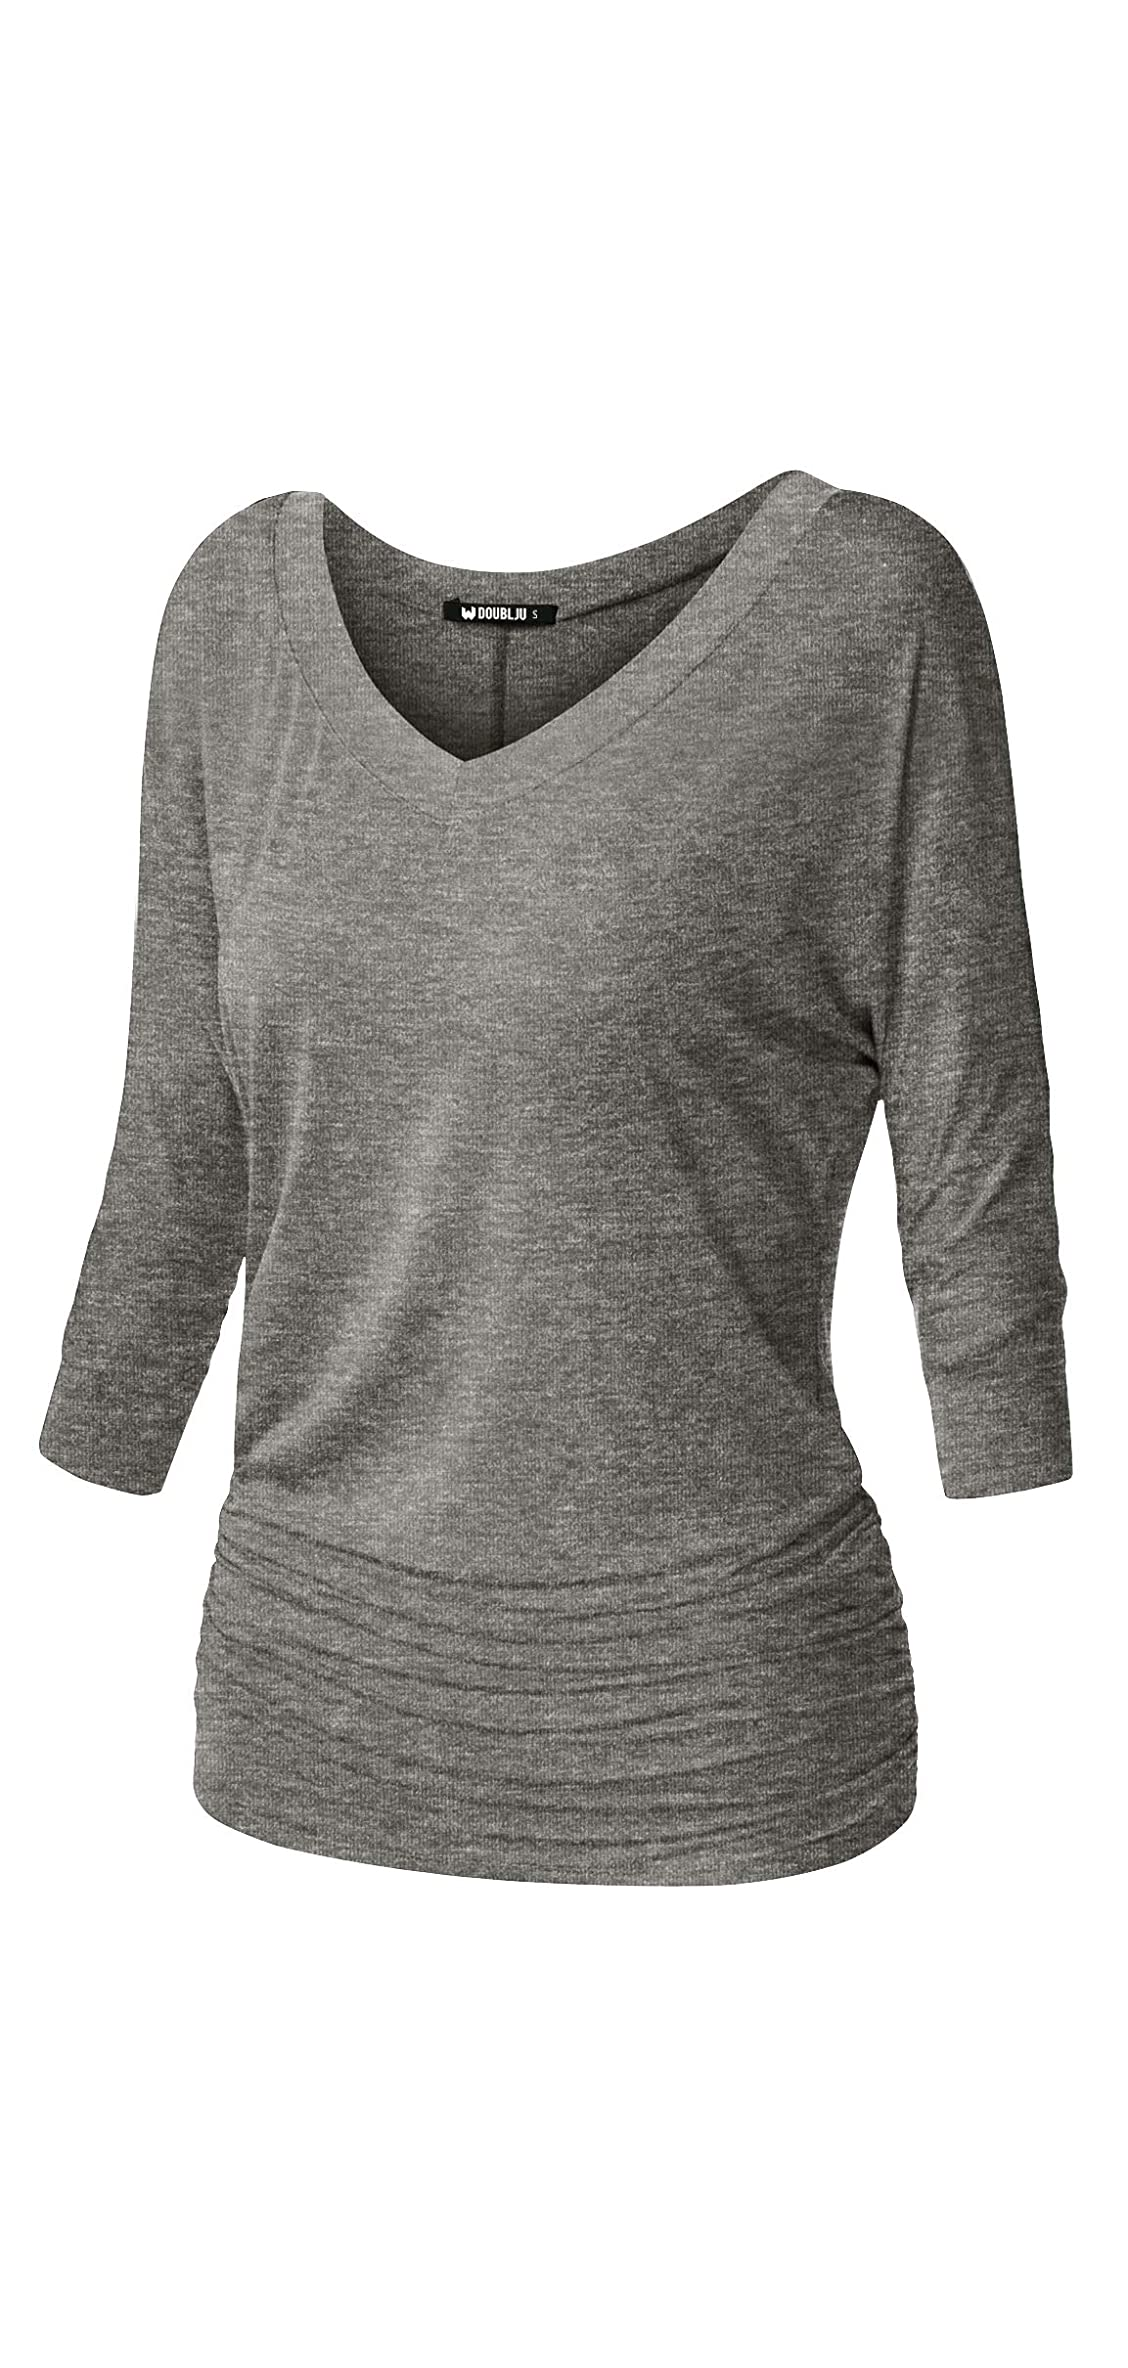 Womens / Sleeve Dolman Drape Top With Side Shirring Fit